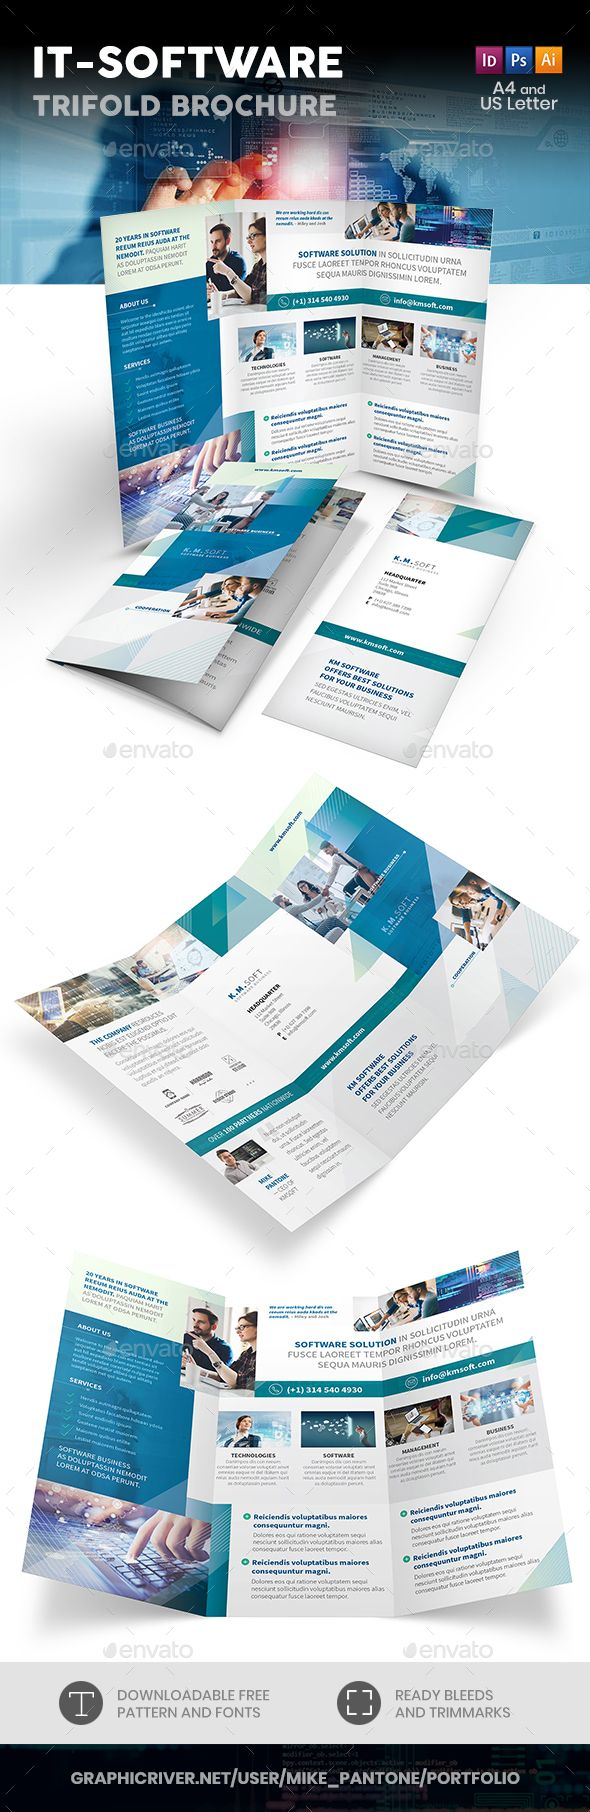 It Software Company Trifold Brochure Fully Editable Professional